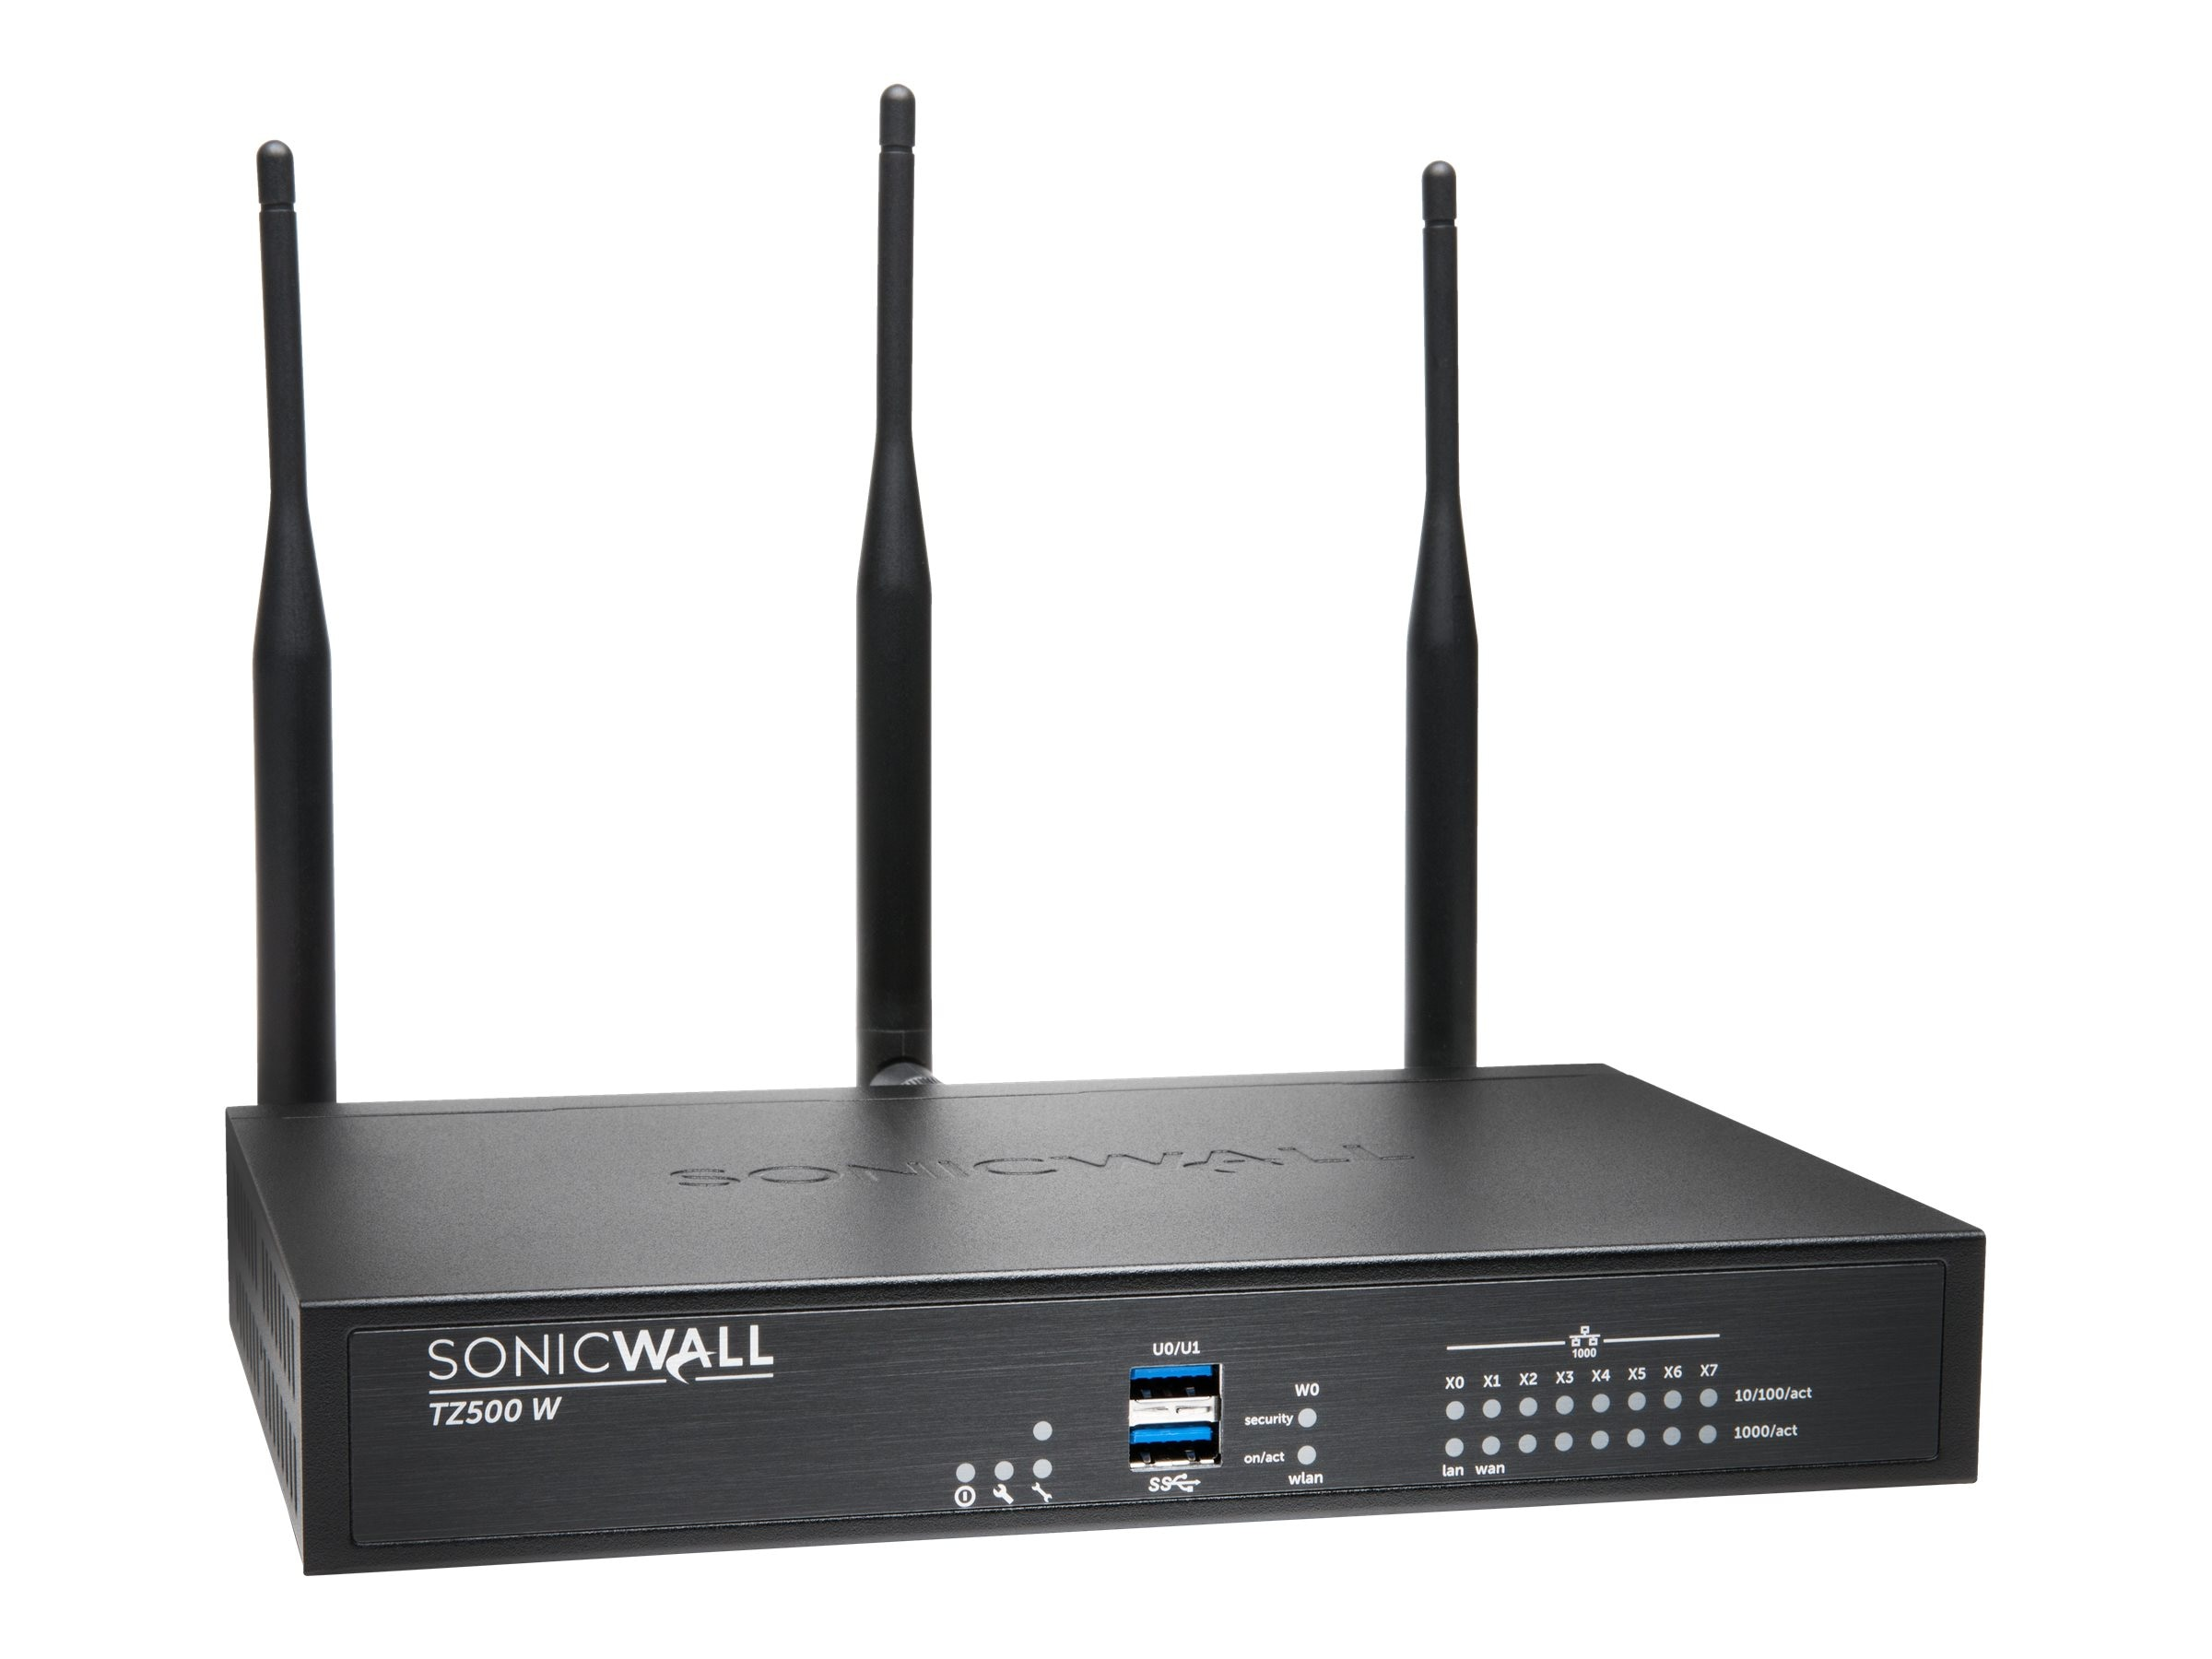 SonicWALL 01-SSC-0212 Image 3